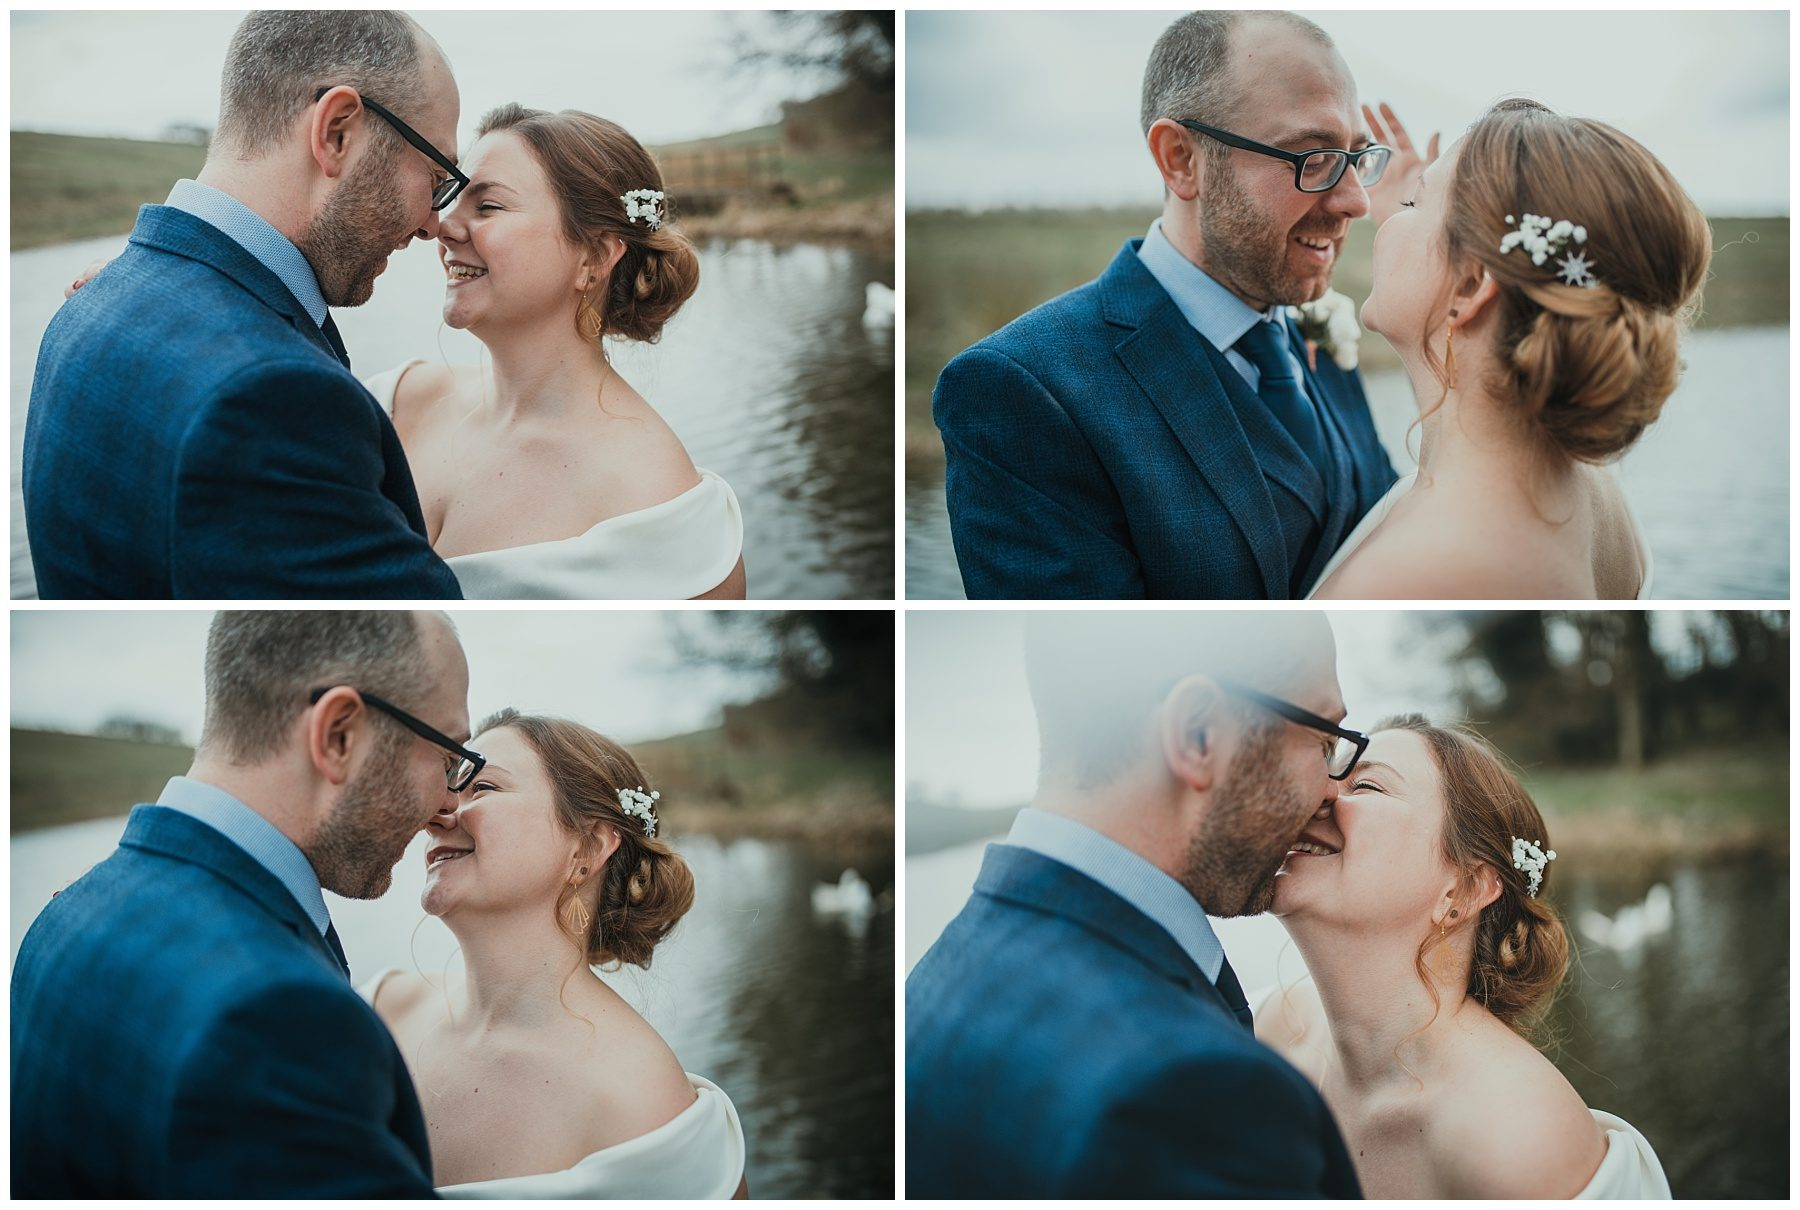 Married couple photography by lake